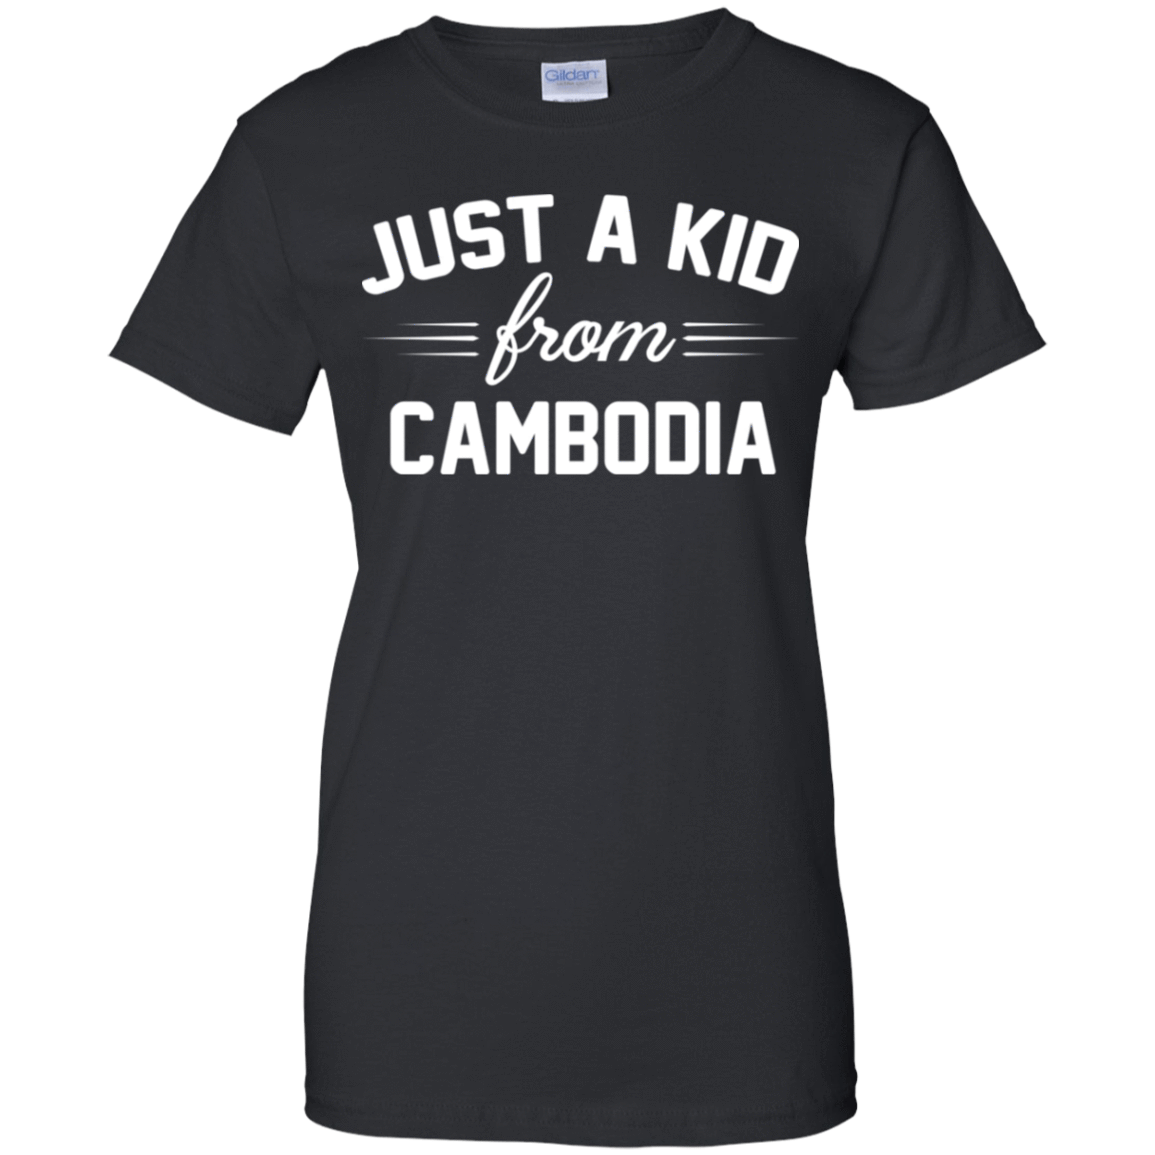 Just a Kid Store | Cambodia T-Shirts, Hoodie, Tank 939-9248-72092775-44695 - Tee Ript